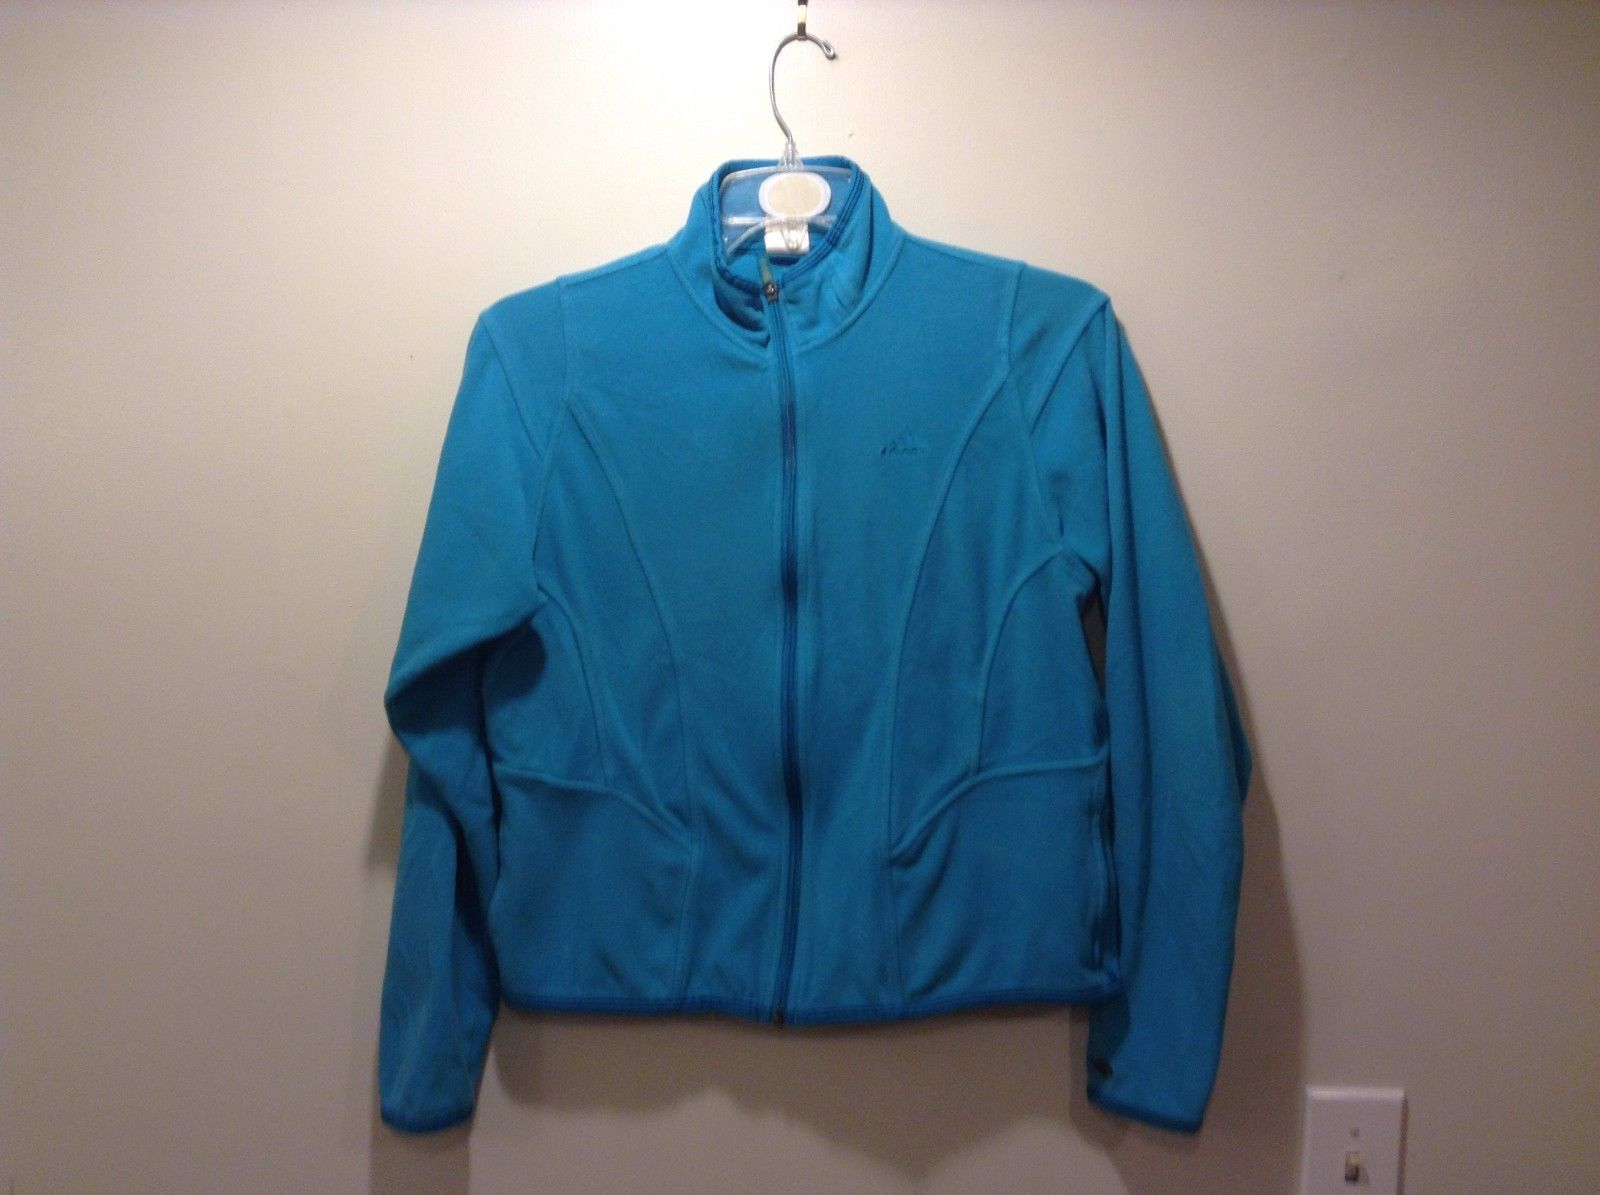 Adidas Cozy Warm Fleece Zip Up Teal Colored Jacket